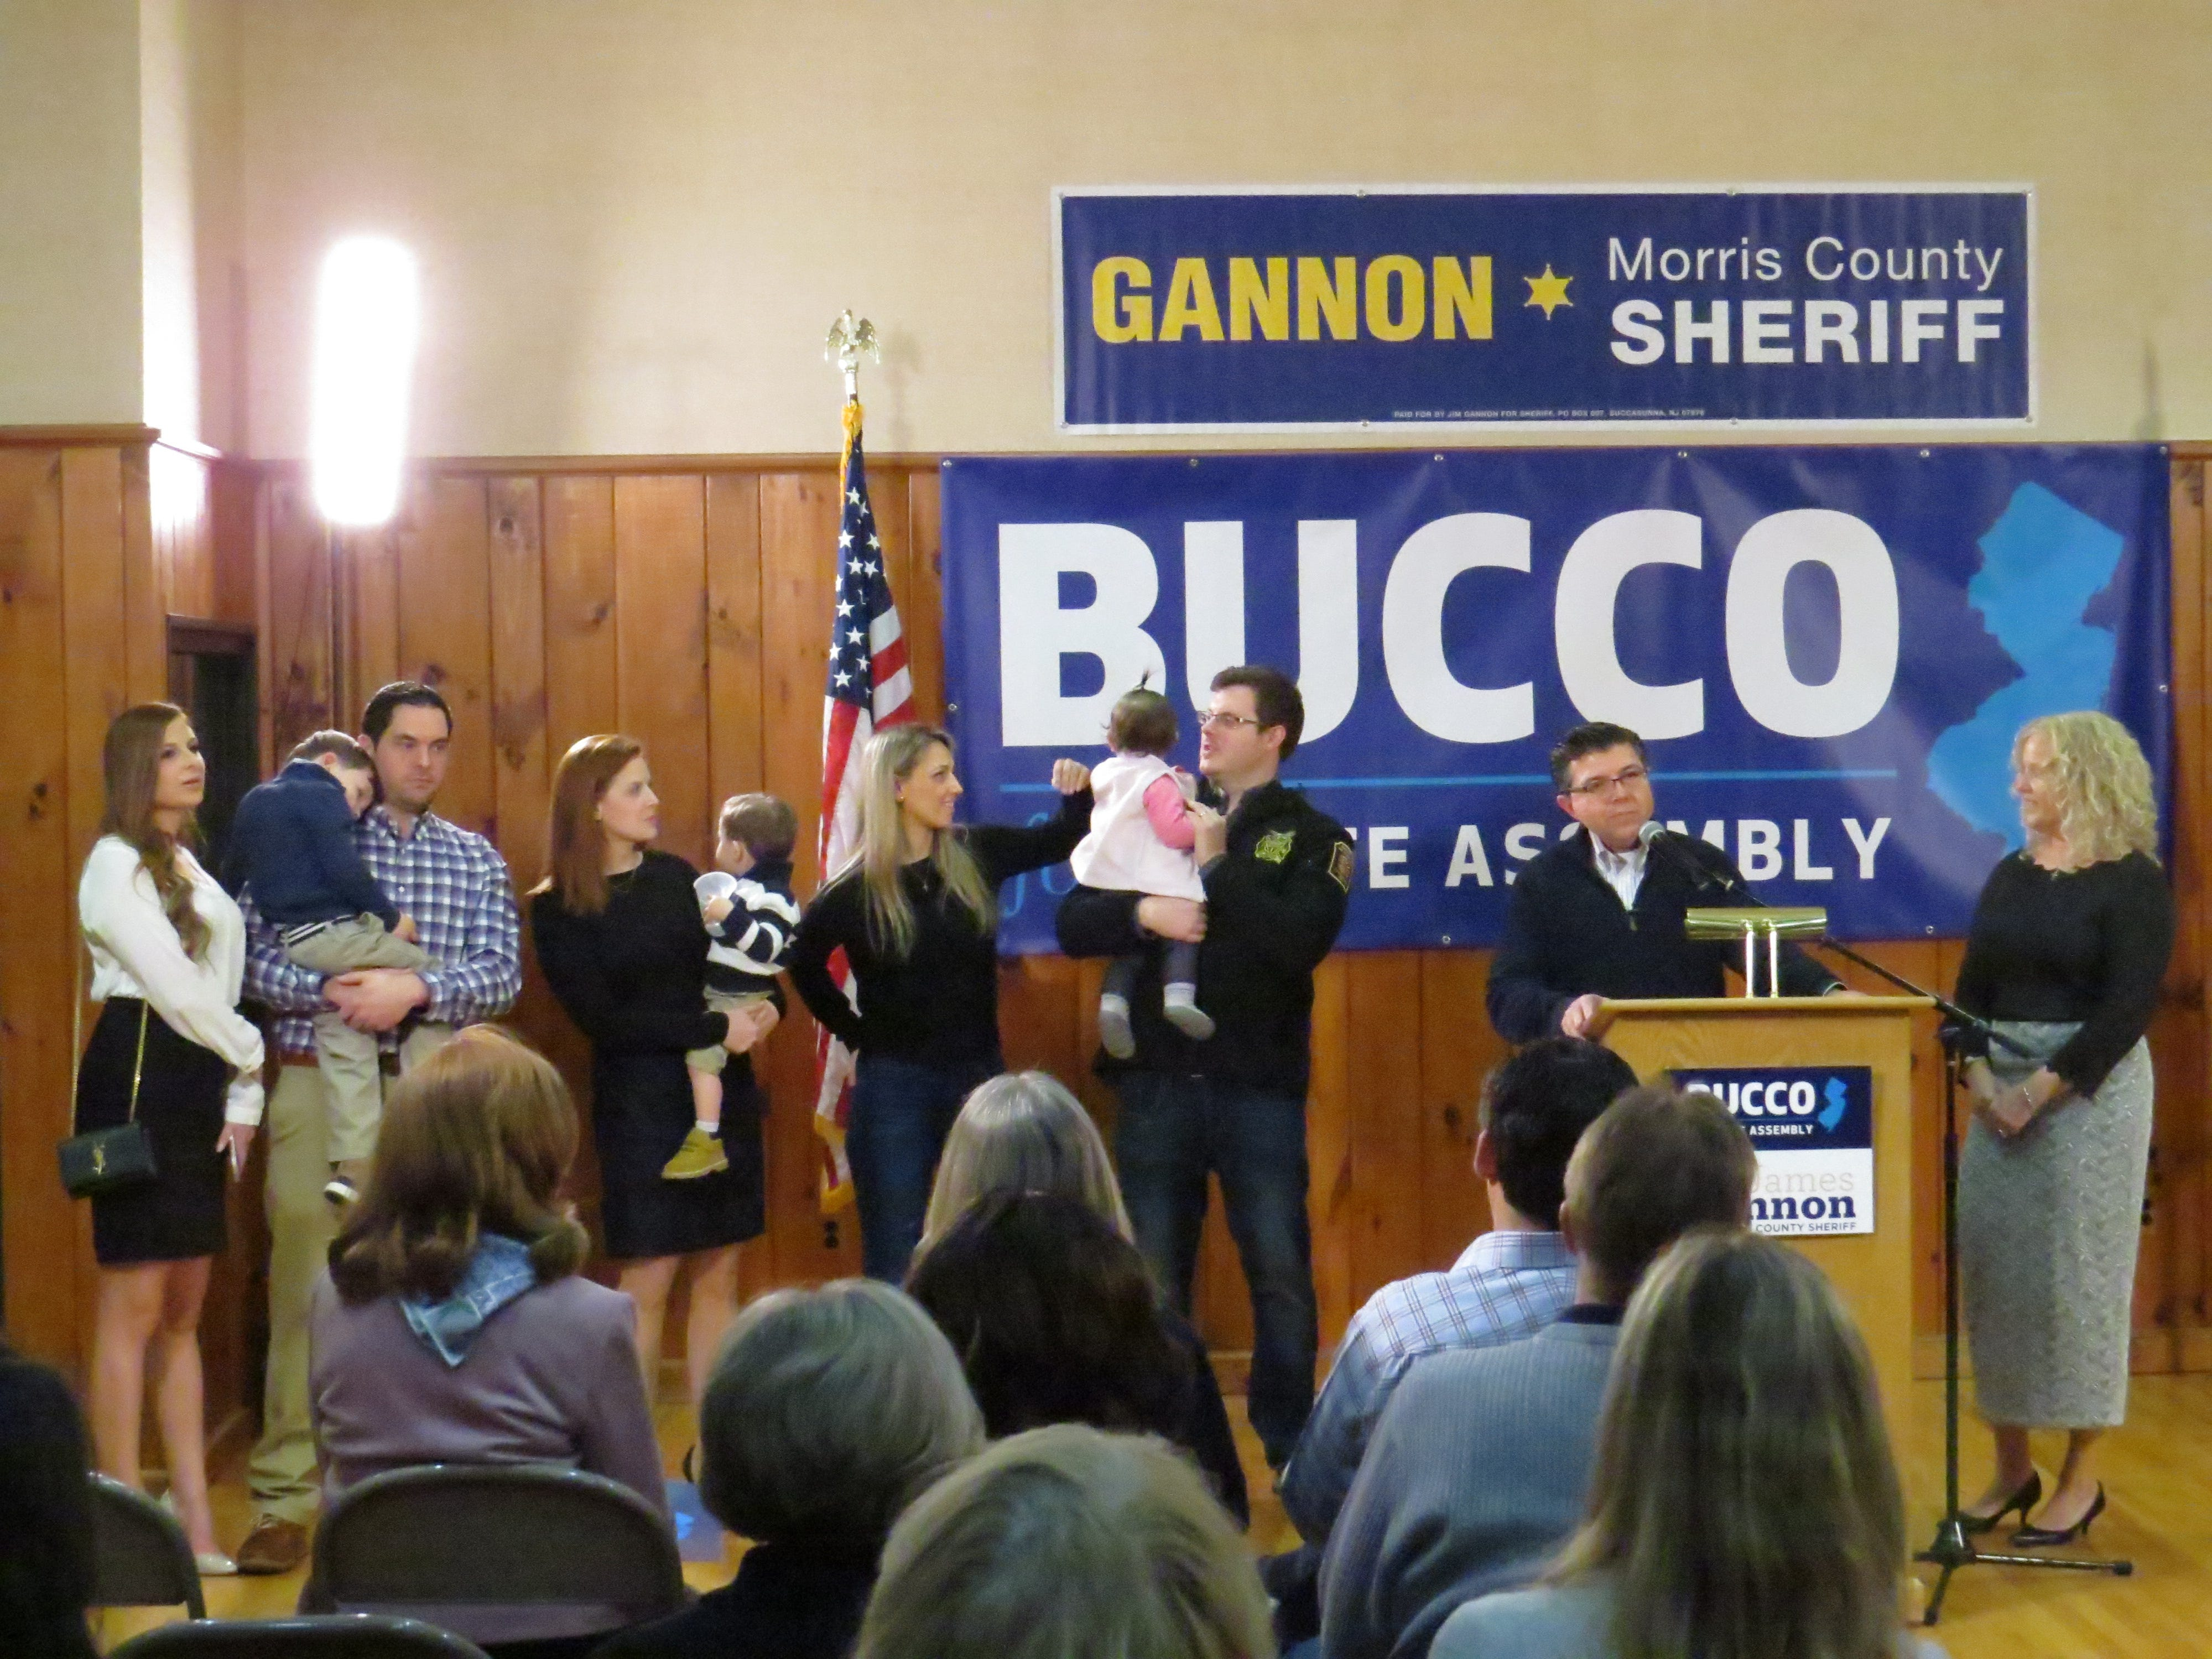 Assemblyman Anthony Bucco announces his re-election campaign along with Morris County Sheriff James Gannon at the Boonton Sokol Lodge. March 4, 2019.